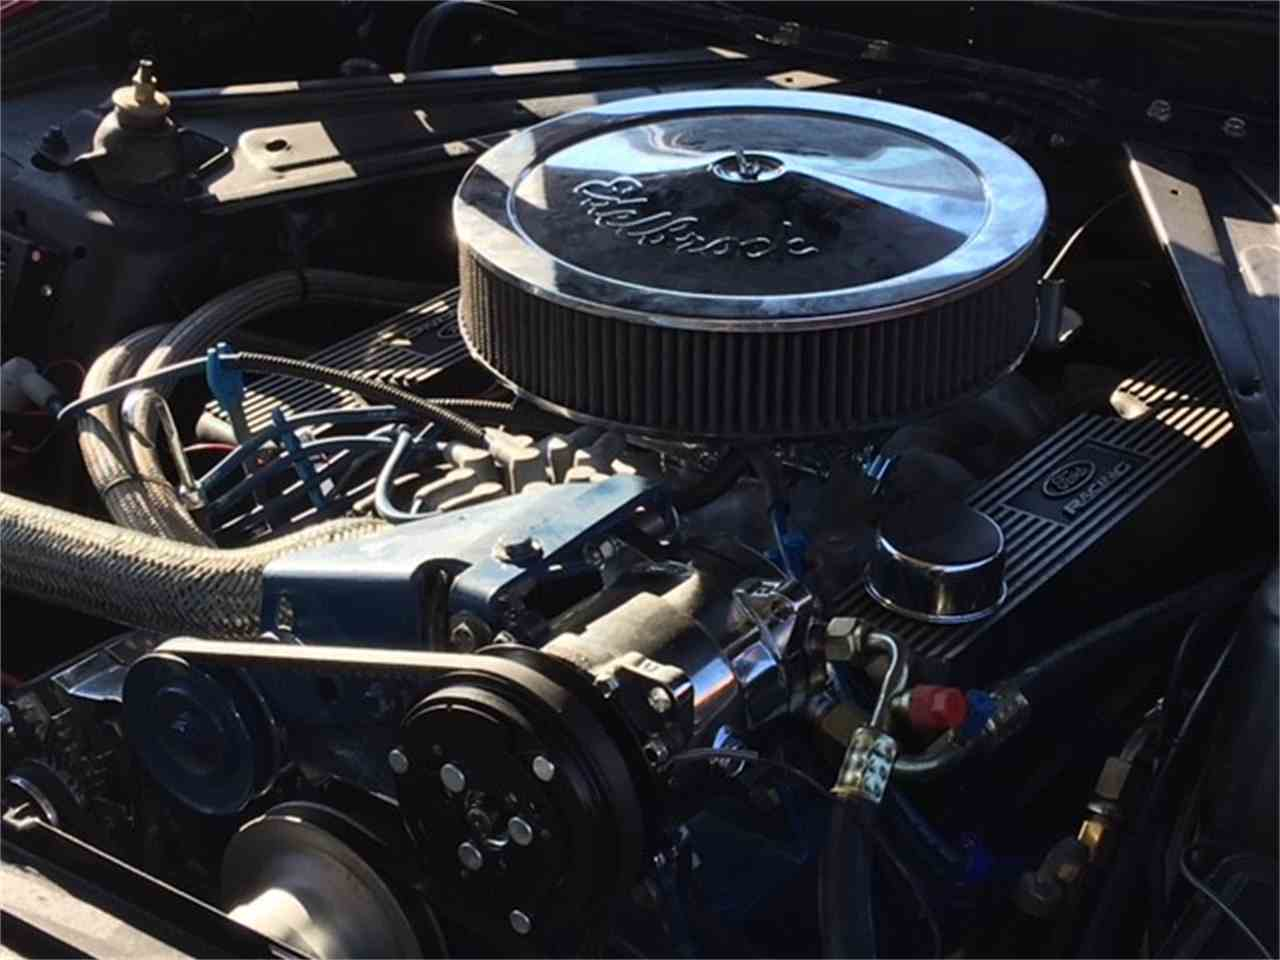 Large Picture of '73 Mustang (Roush) - $18,000.00 - LRQU